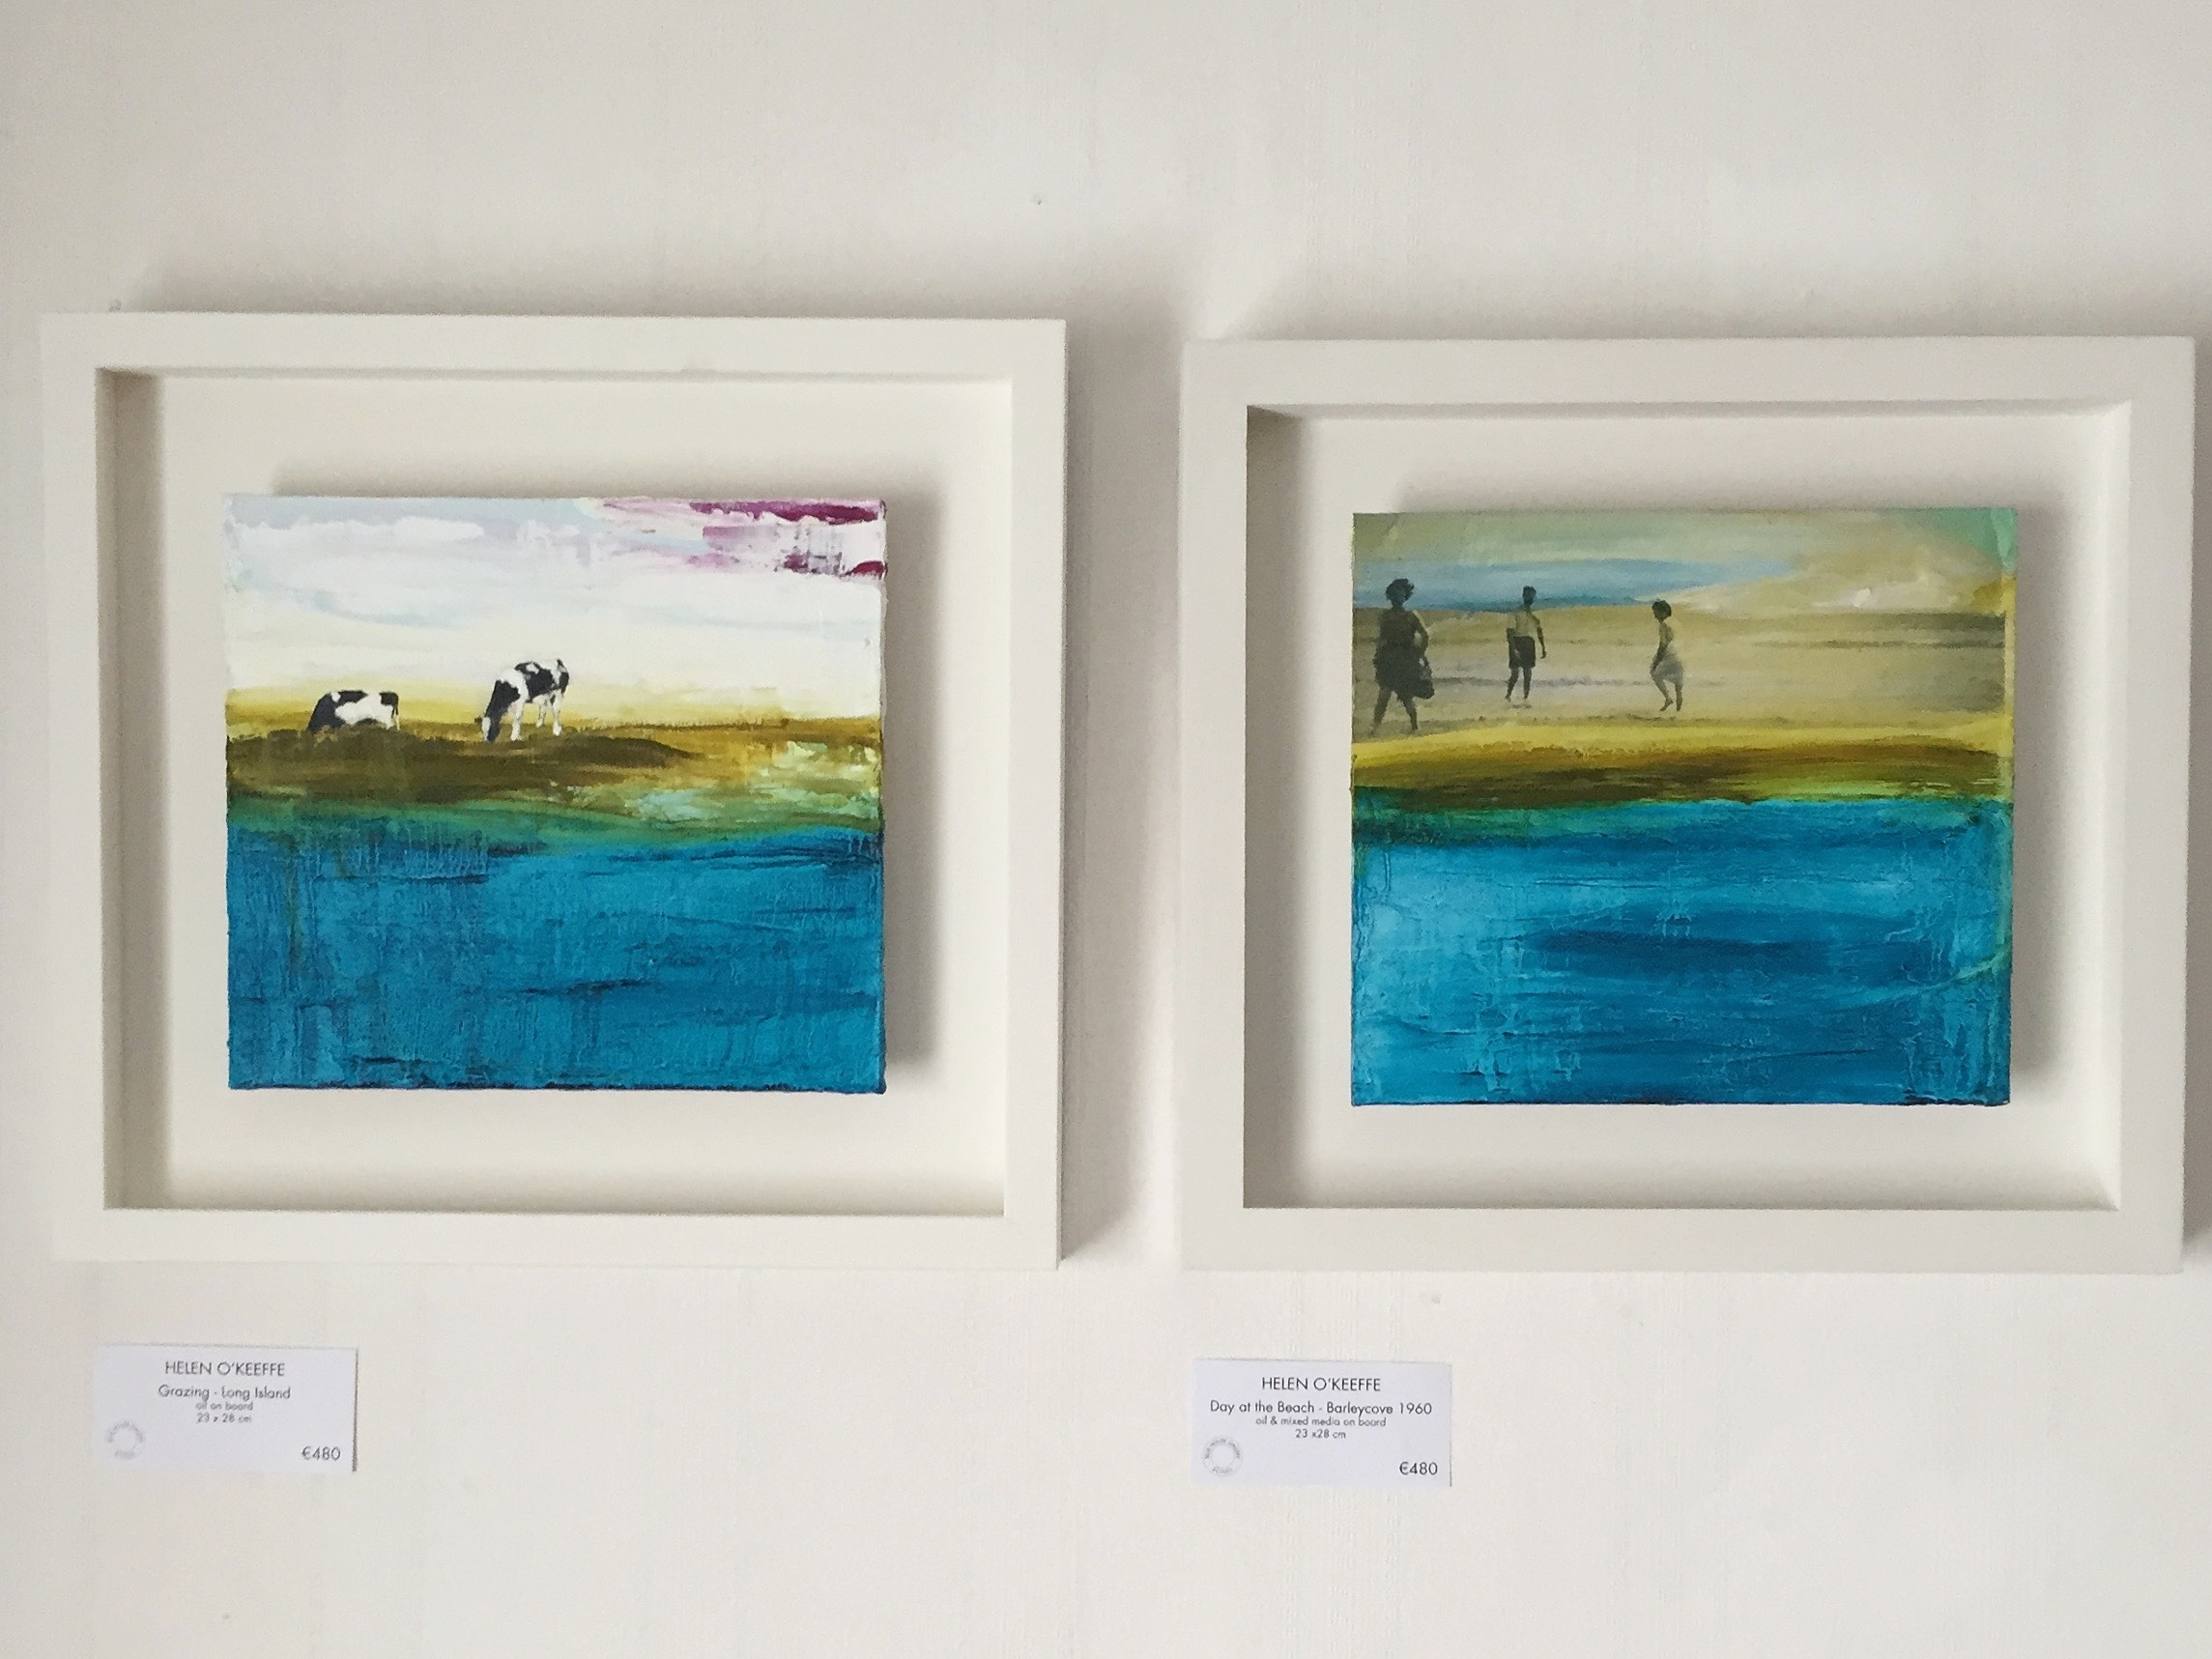 'Island Grazing' & 'Day at the Beach, 1960'